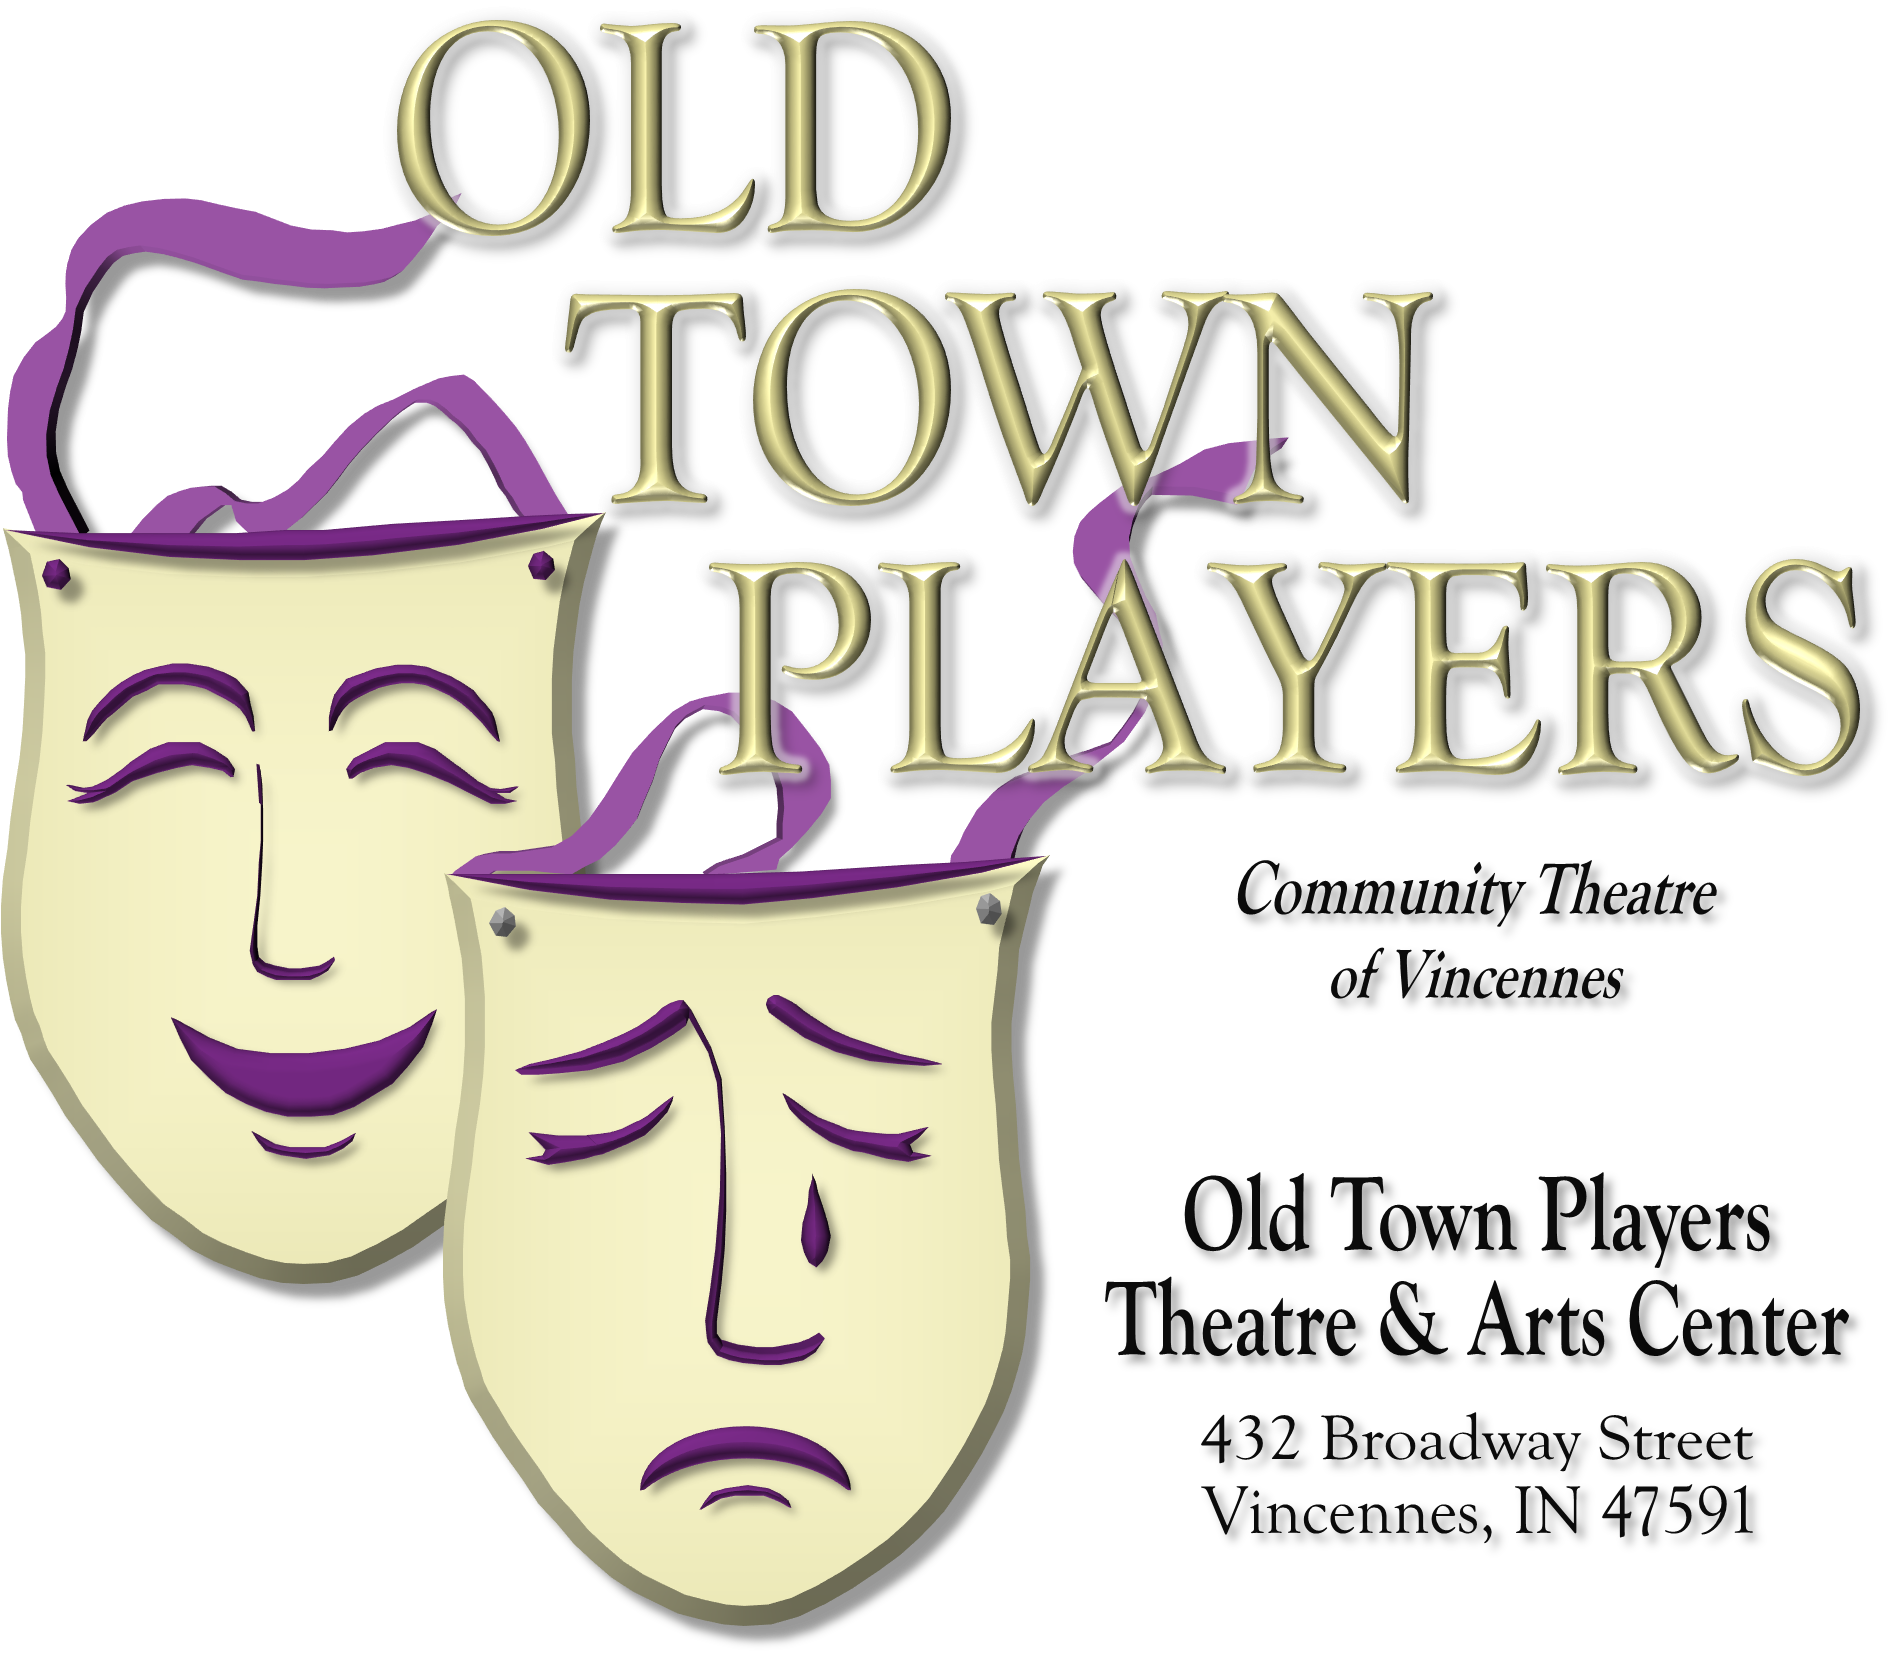 Old Town Players